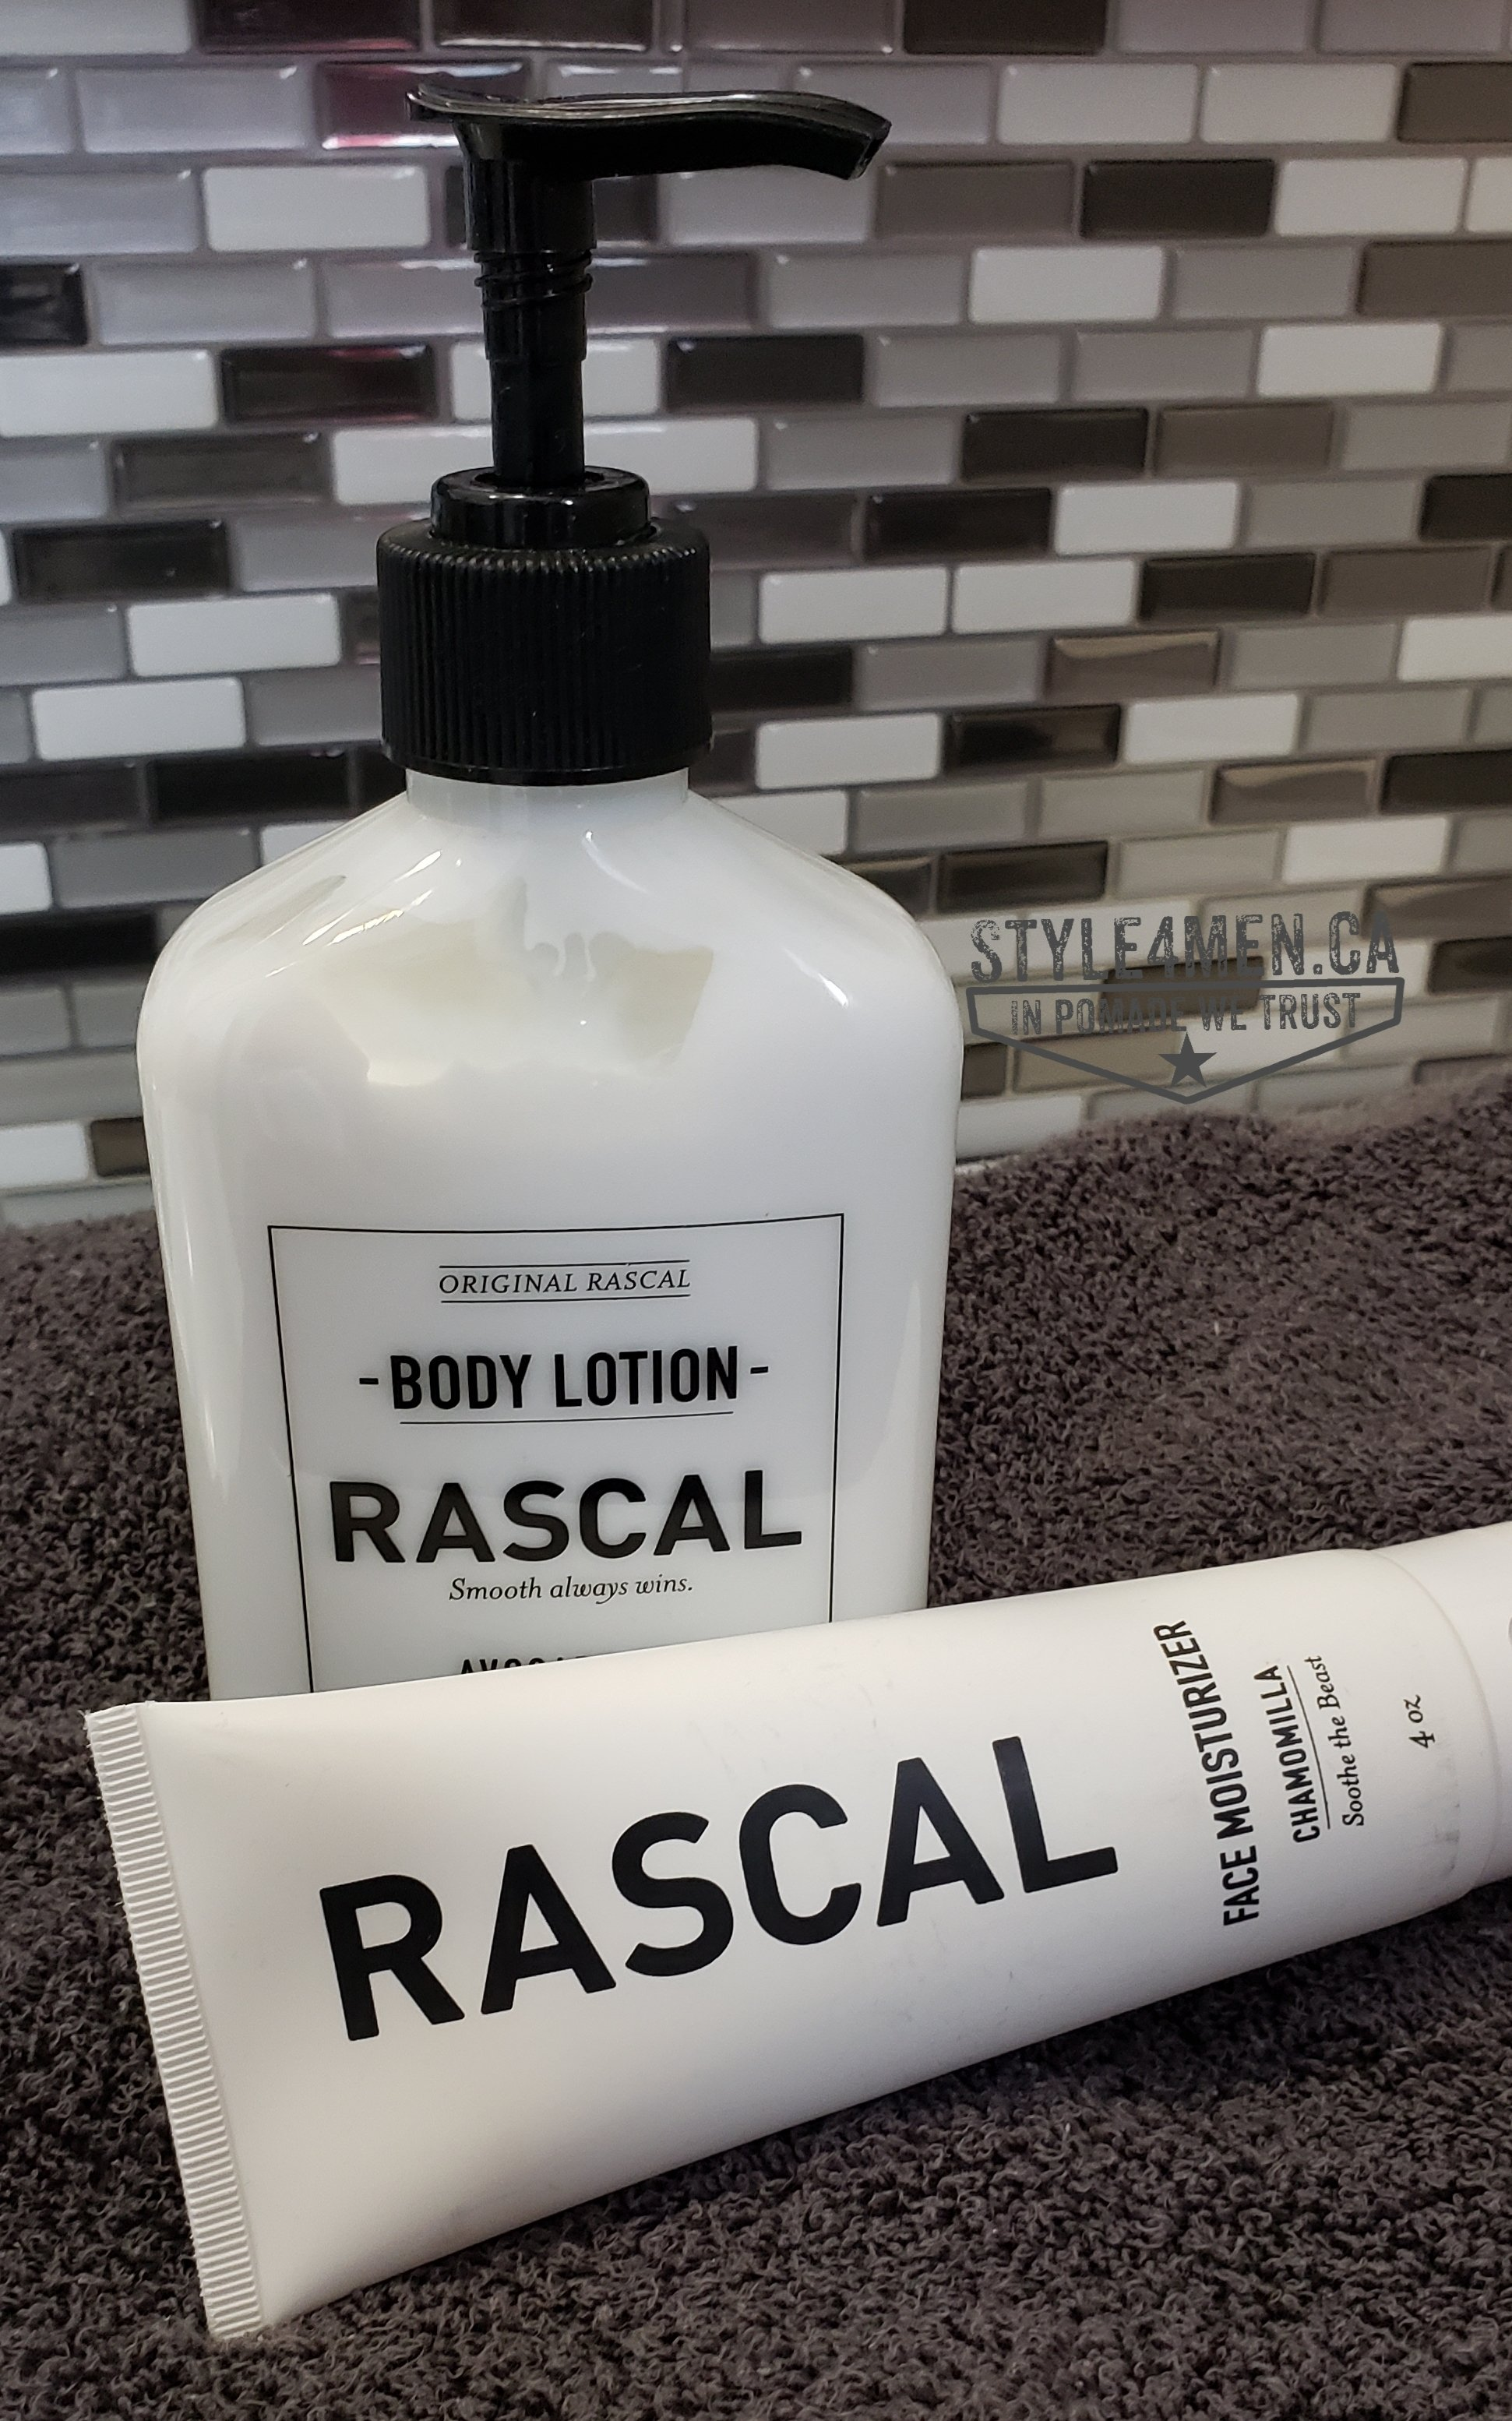 RASCAL MAN Body Lotion and Face Moisturizer